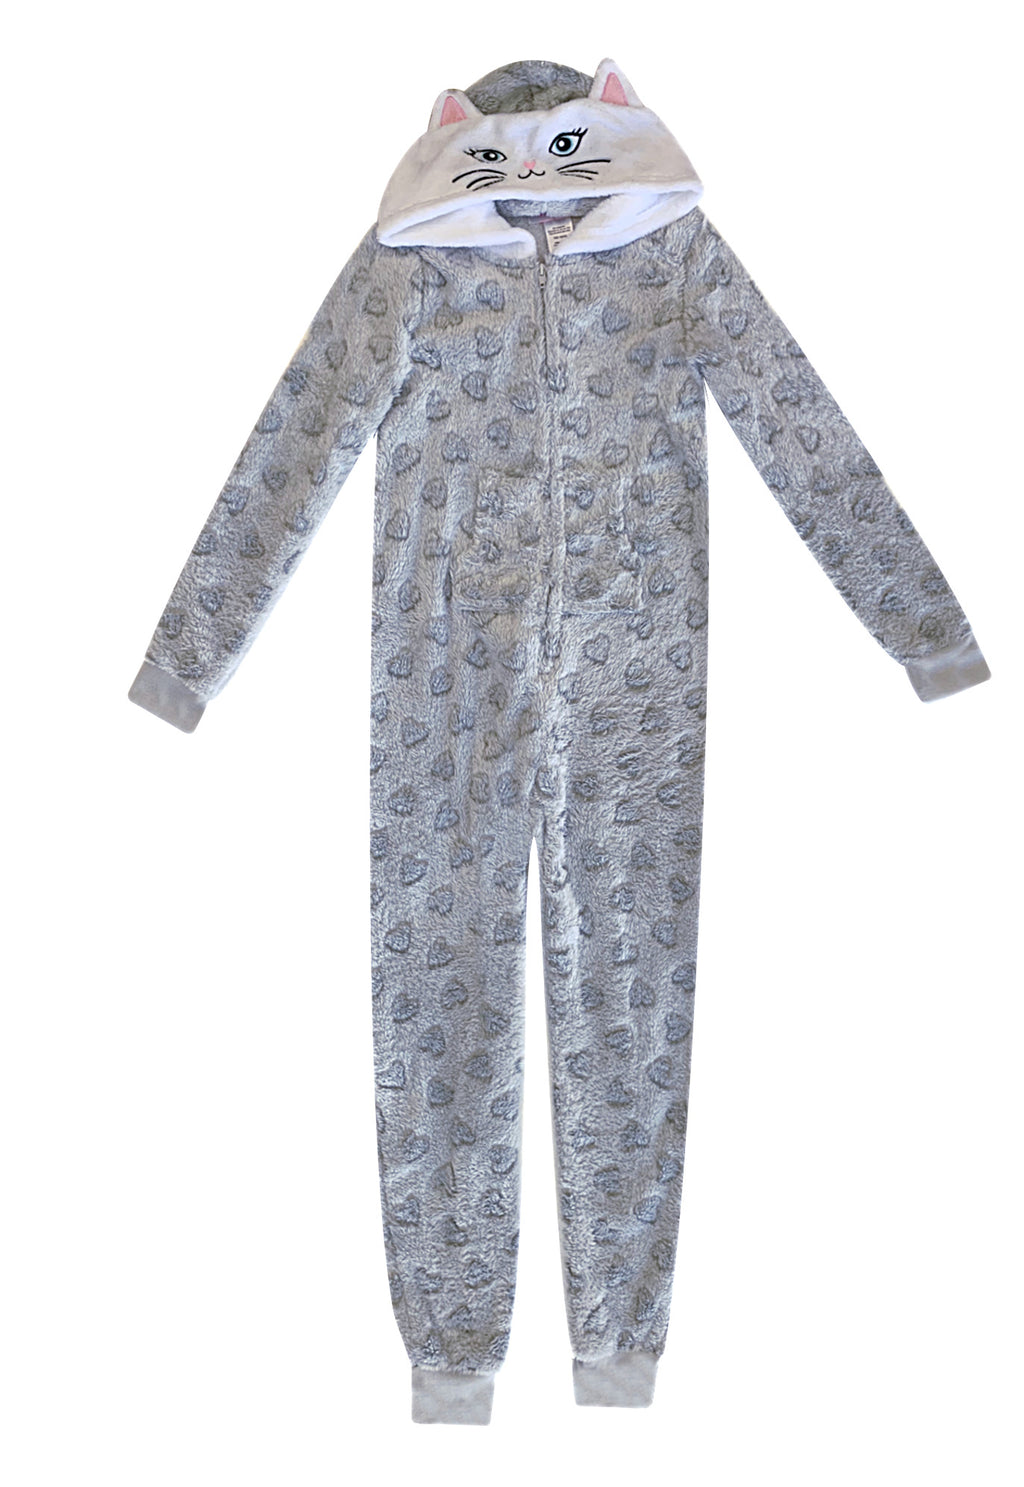 Popular Girl's Fuzzy Fleece Plush Blanket Sleeper Jumpsuit with Hood